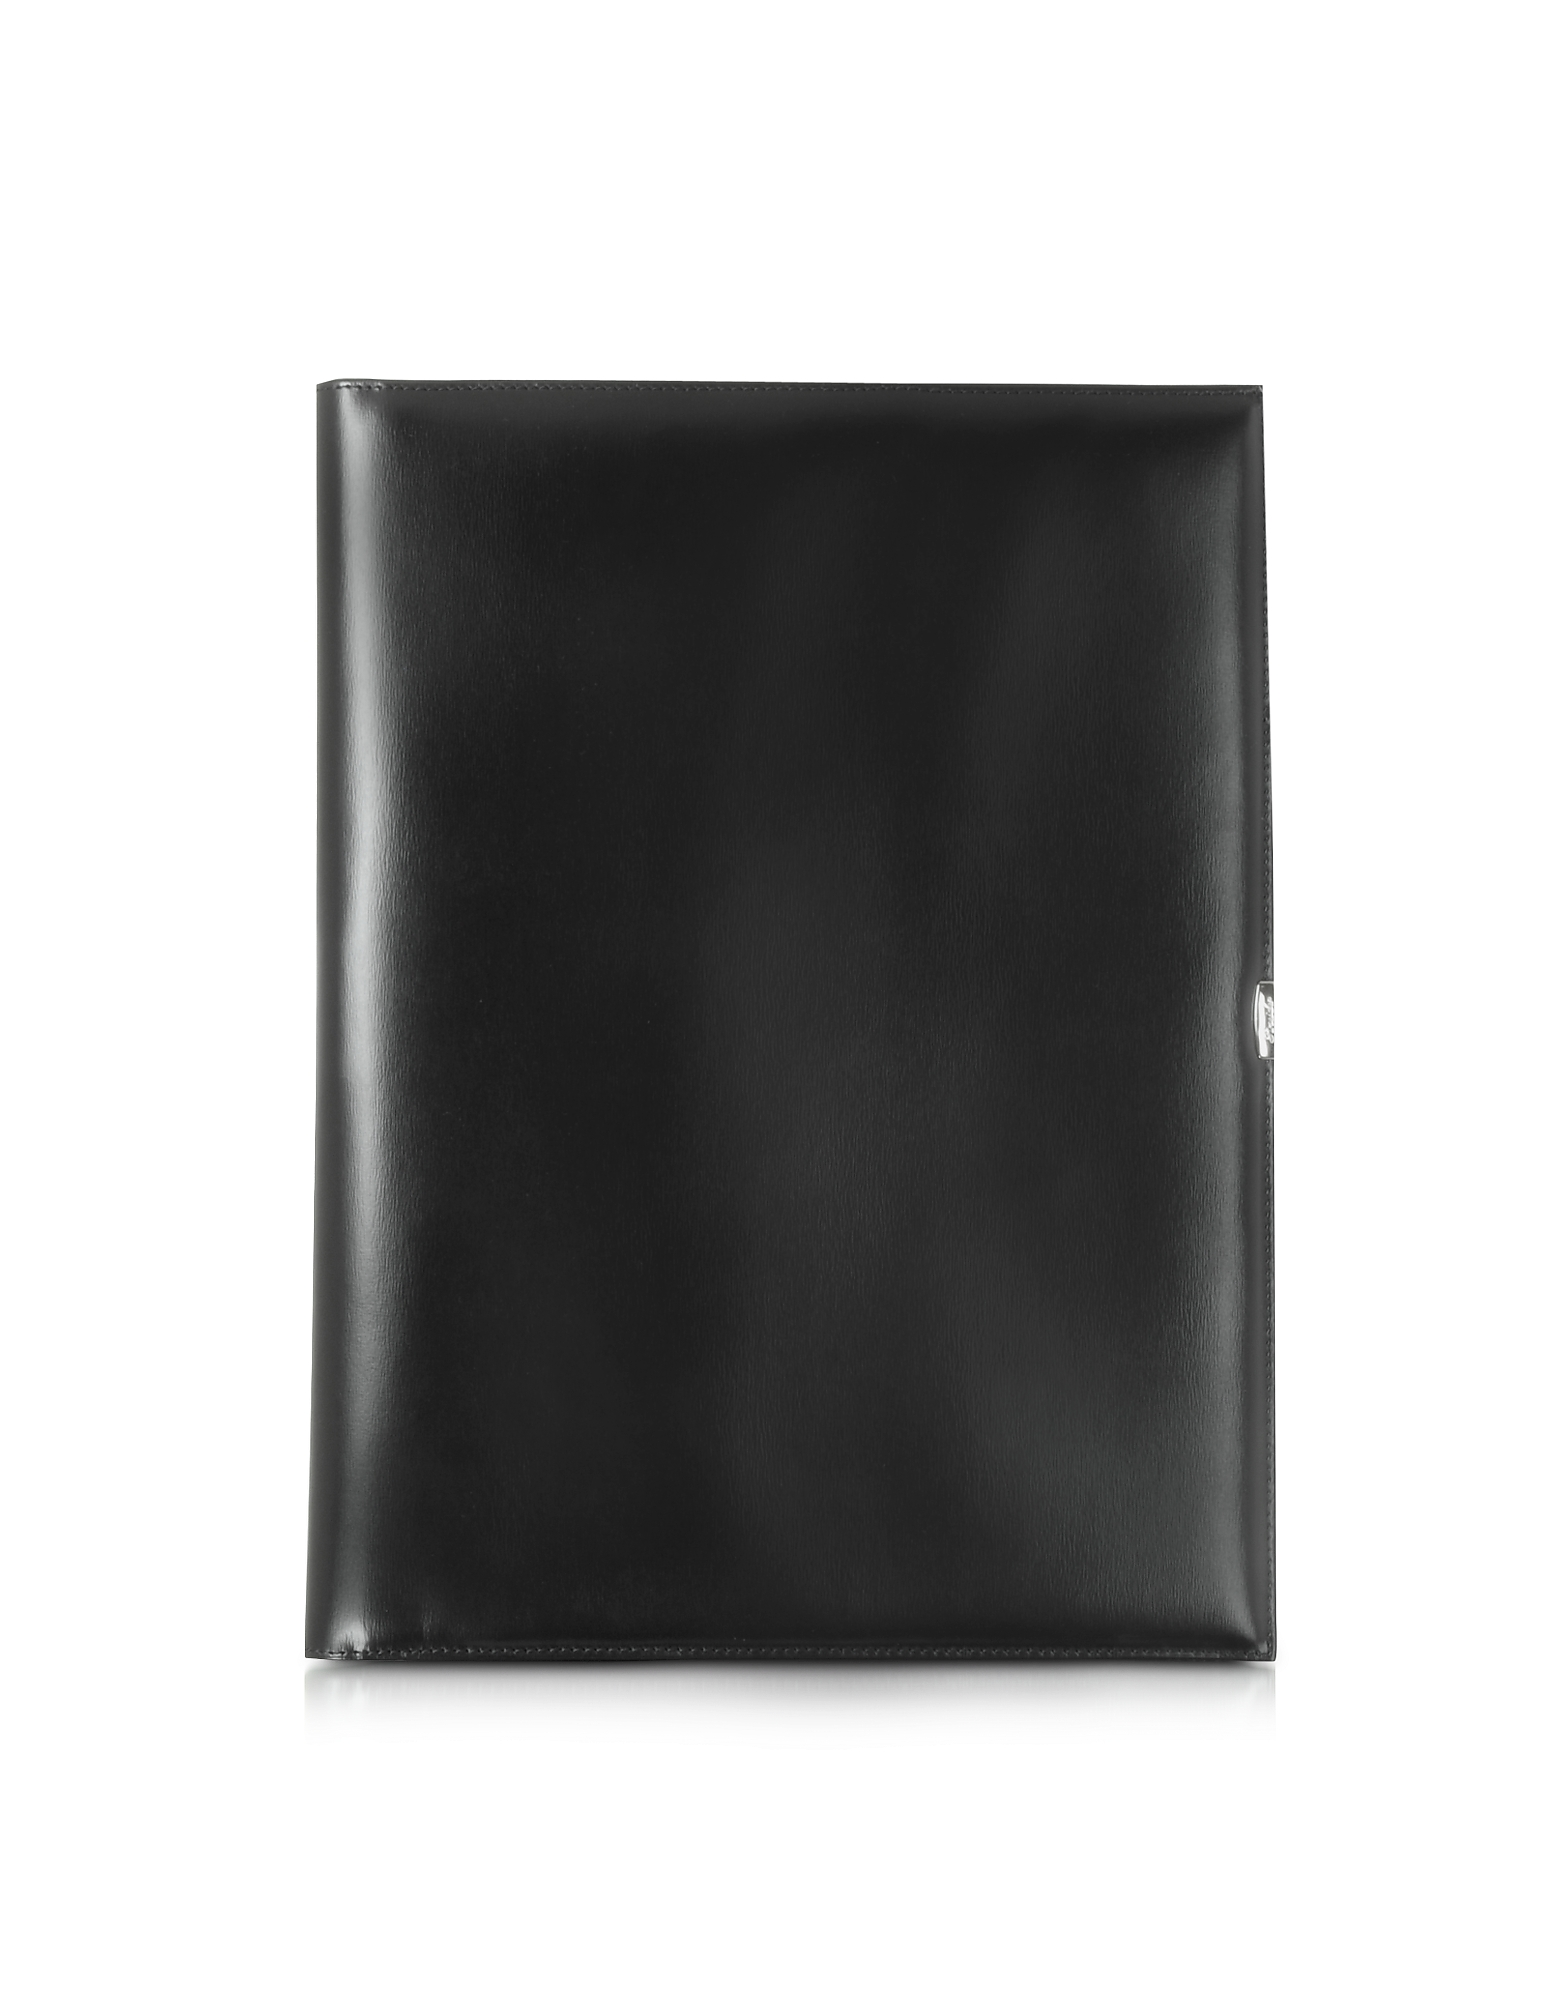 Pineider Designer Desk Accessories, 1949 A4 Black Leather Notepad Holder pn380016-005-00